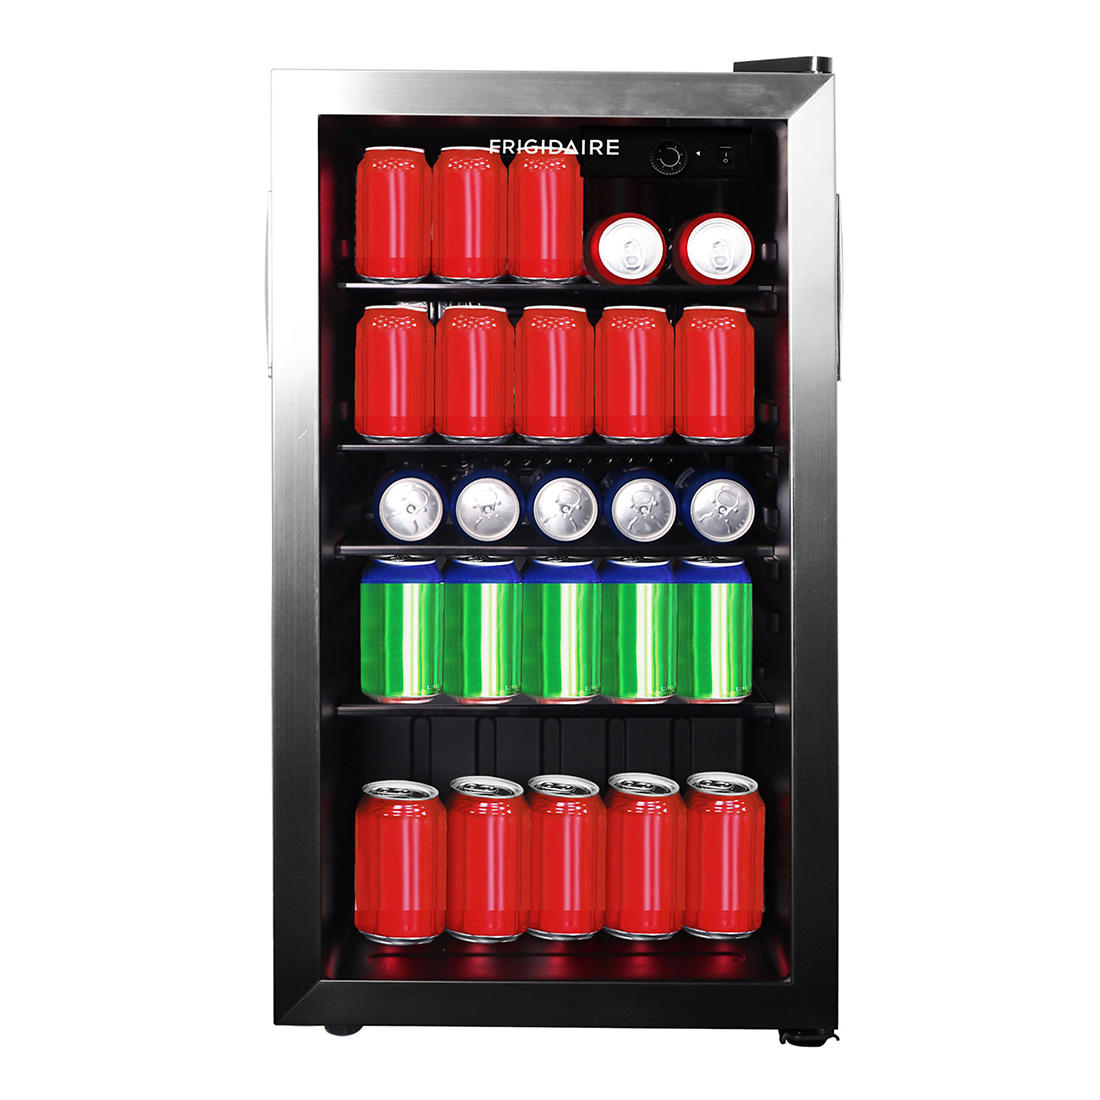 Frigidaire 110-Can/26-Wine Bottle Beverage Center